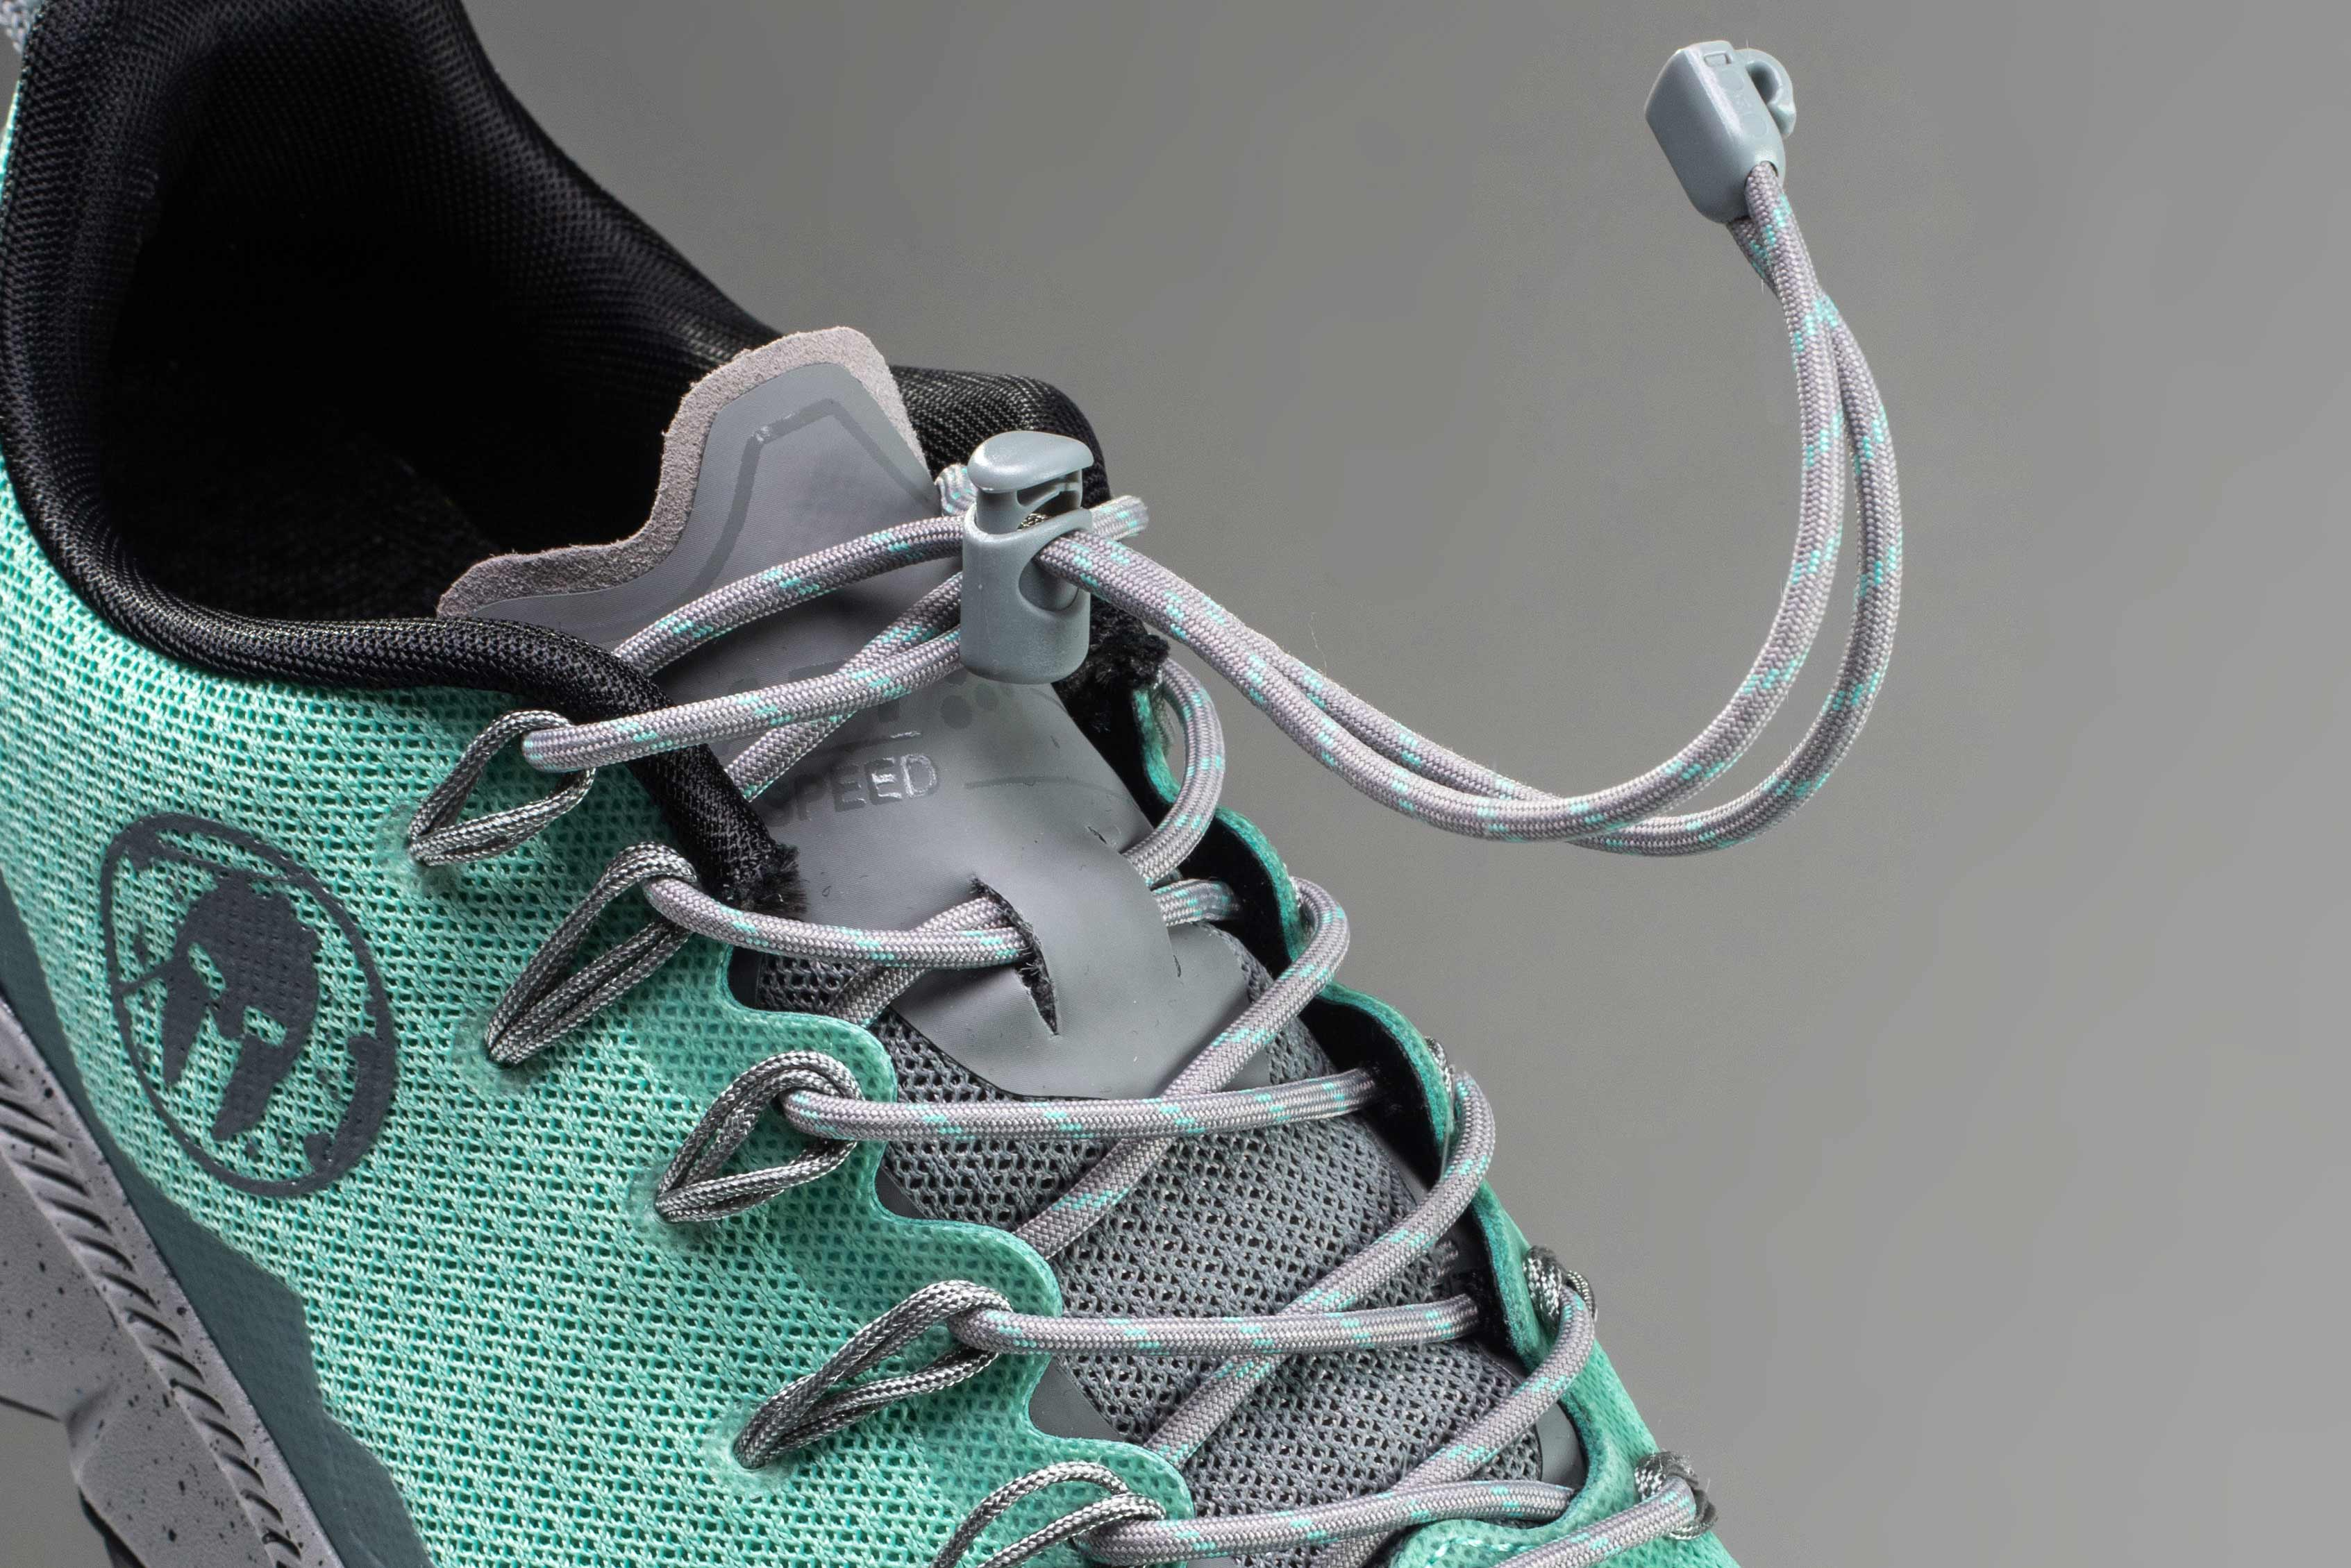 Nordic Speed Shoe Review